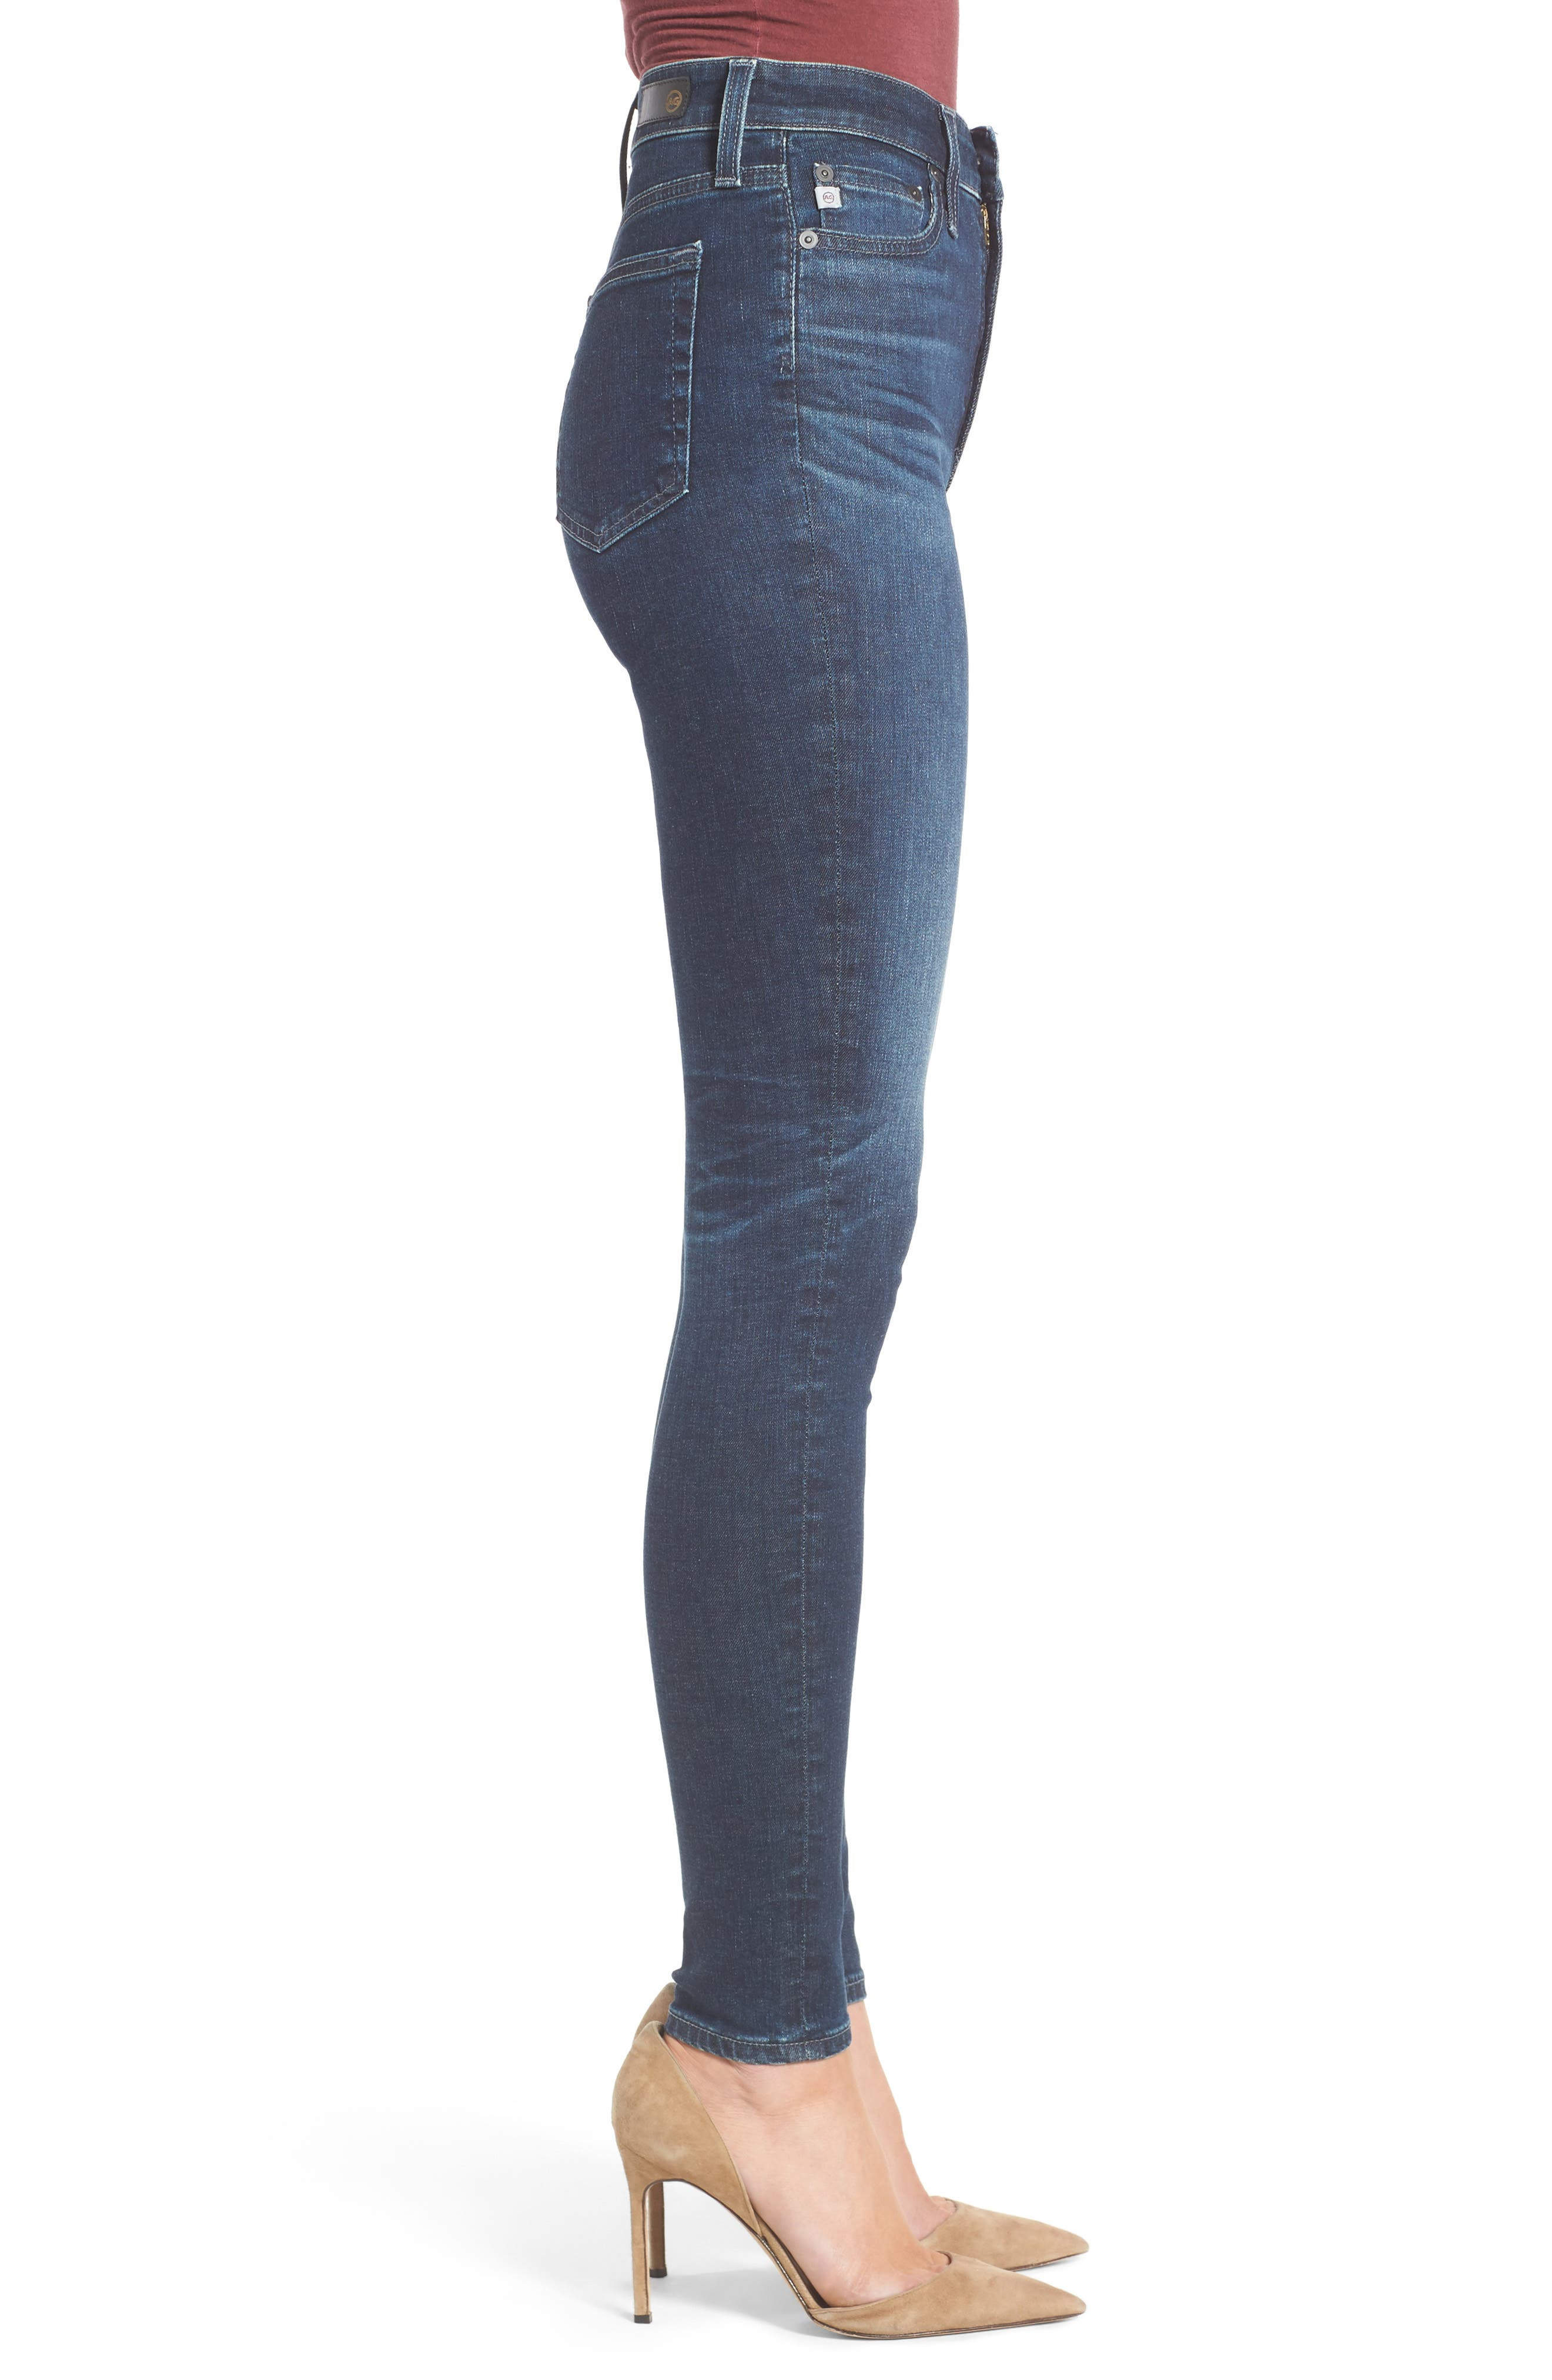 Mila High Rise Skinny Jeans,                             Alternate thumbnail 4, color,                             03Y Rendezvous